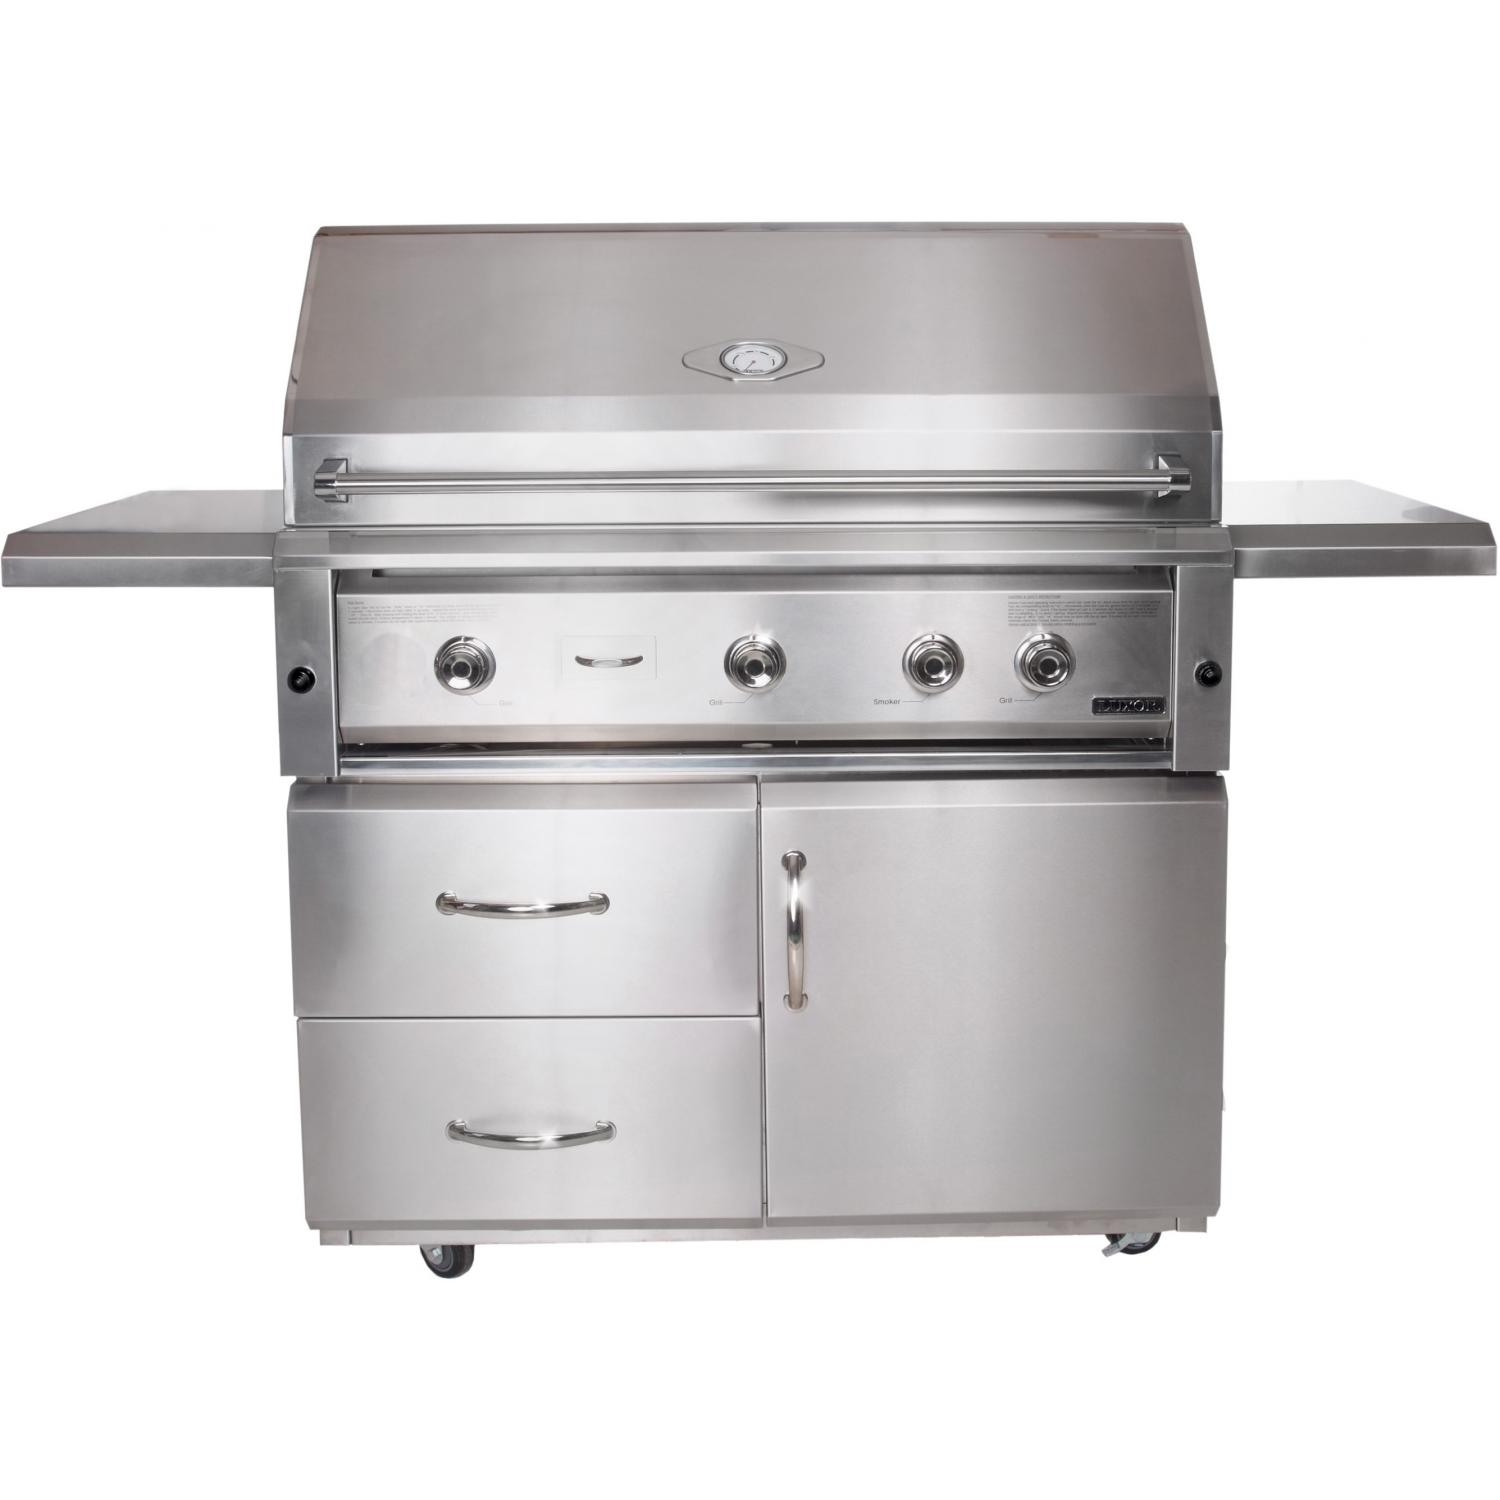 Luxor Gas Grills 42 Inch Propane Gas Grill On Cart AHT-42CVF-LP